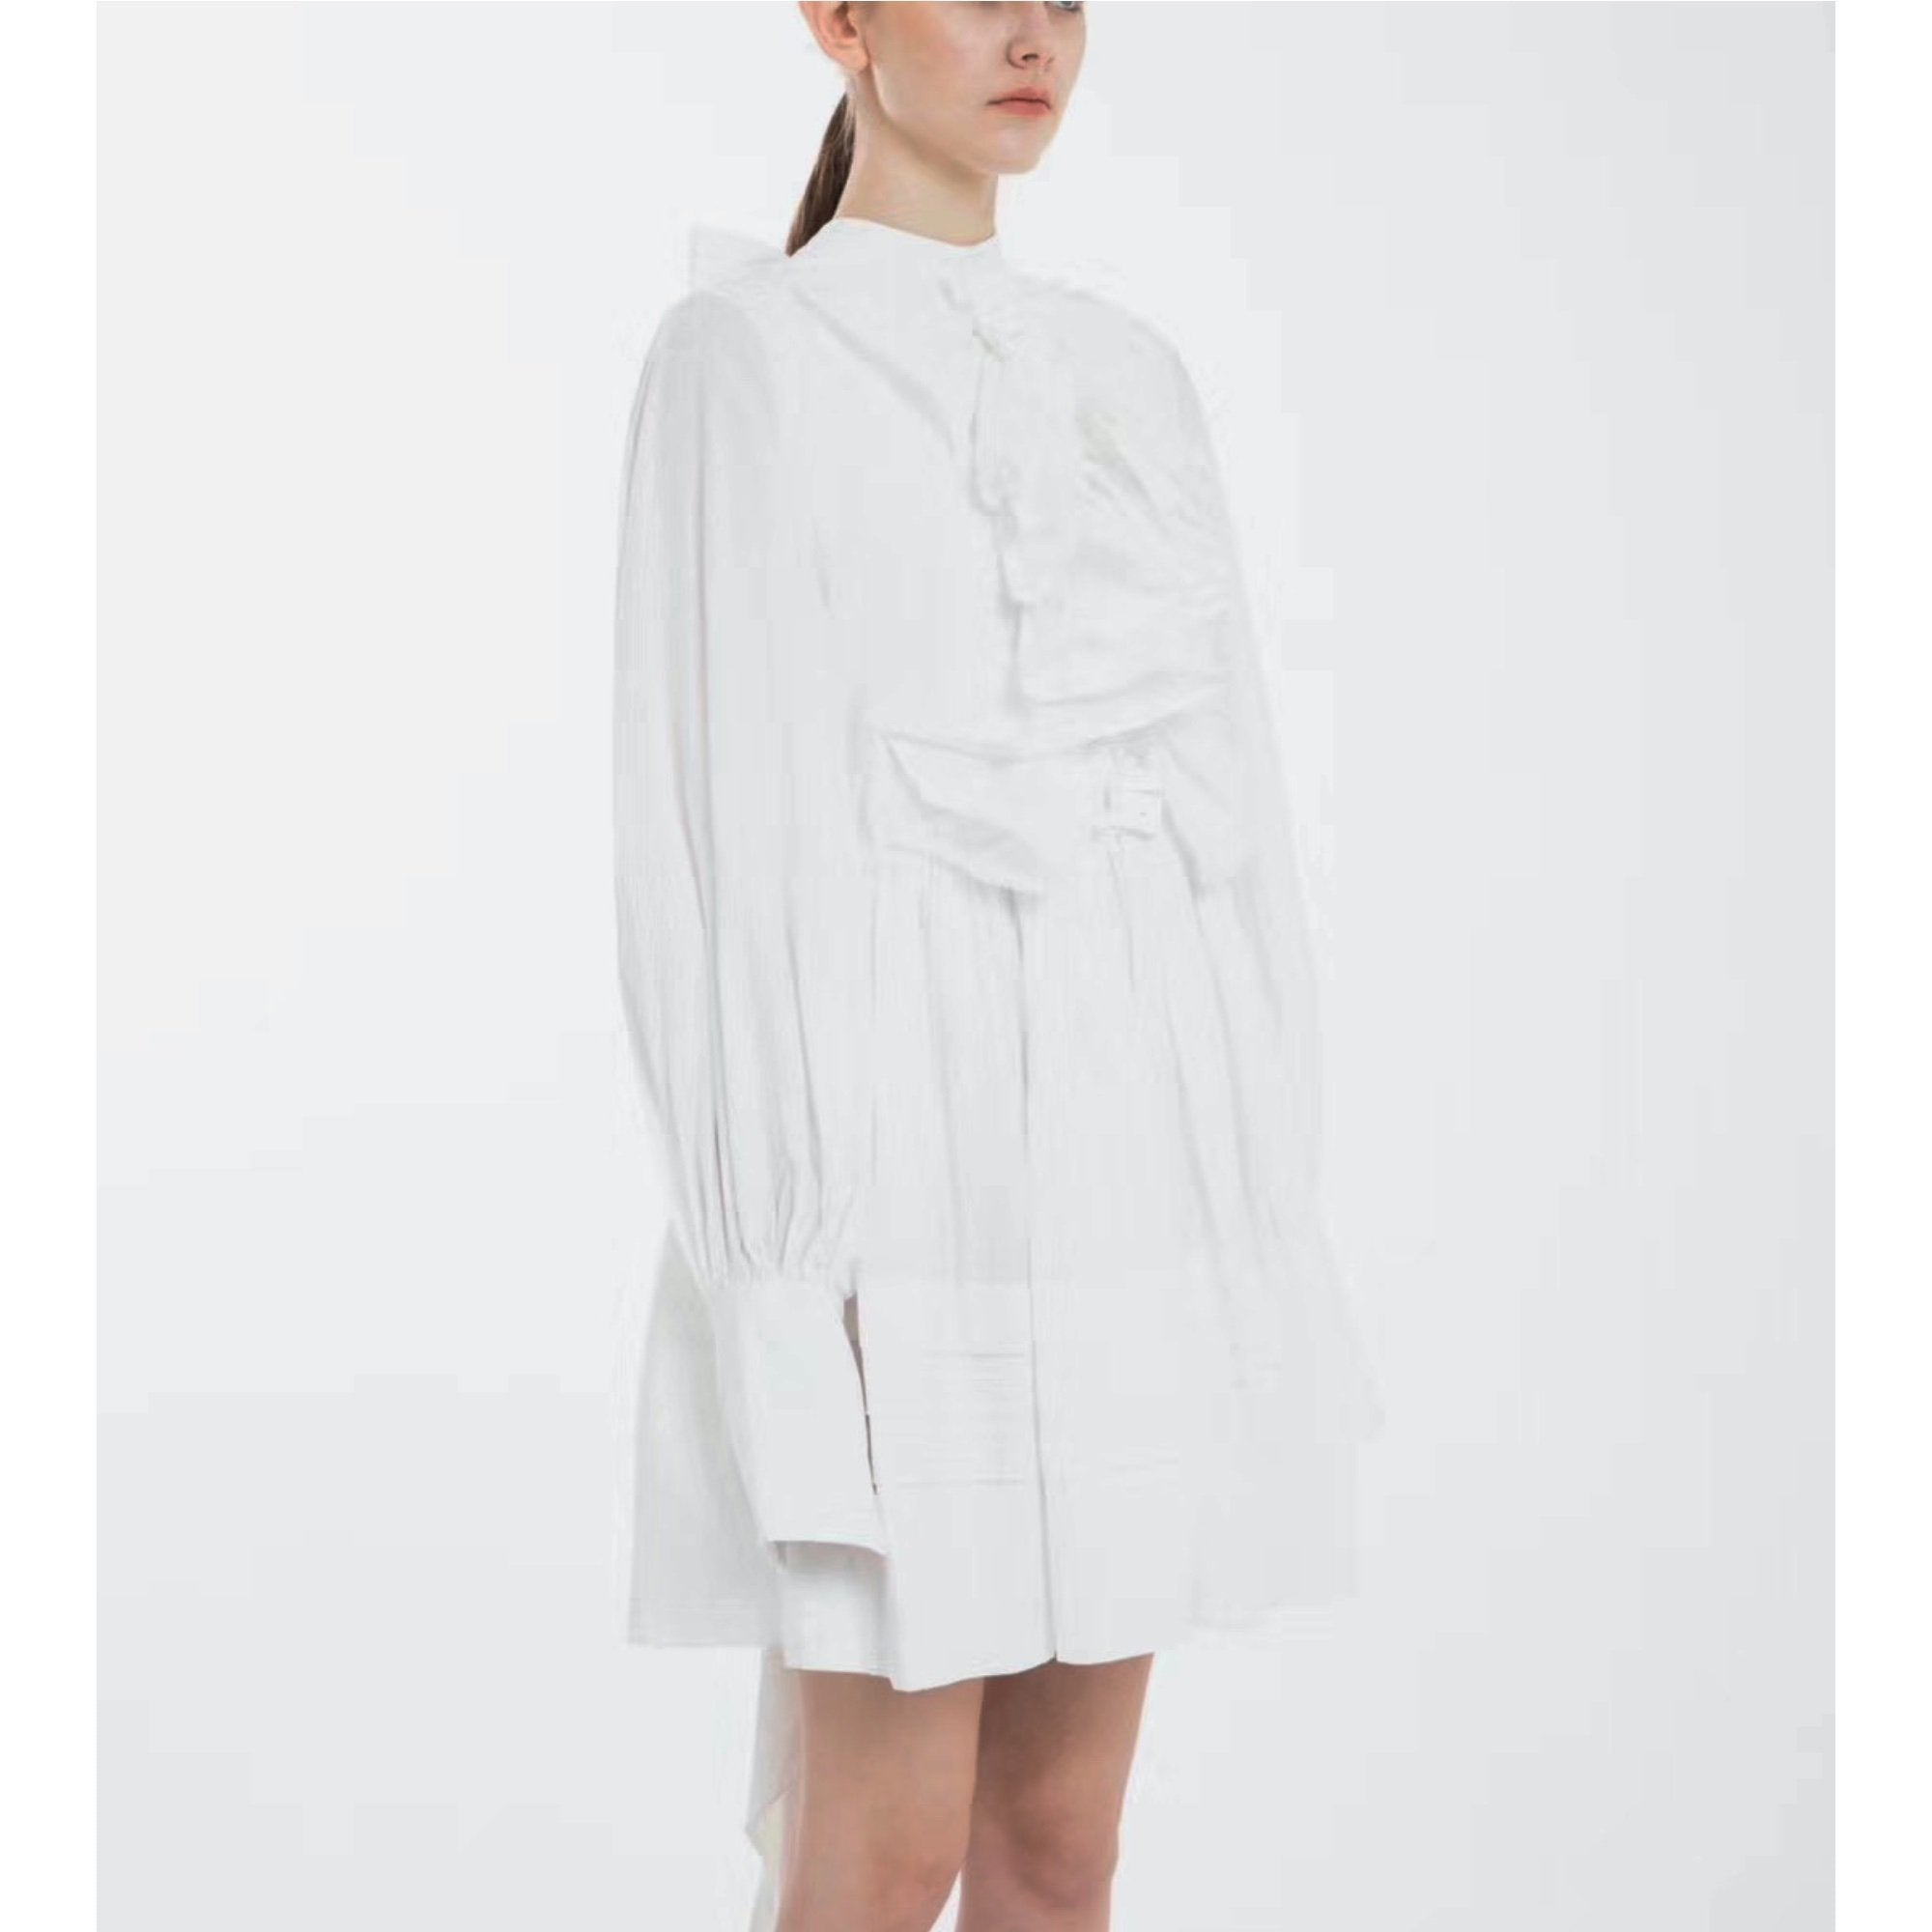 2208M DECAF White Oversized Shirt Dress | MADA IN CHINA